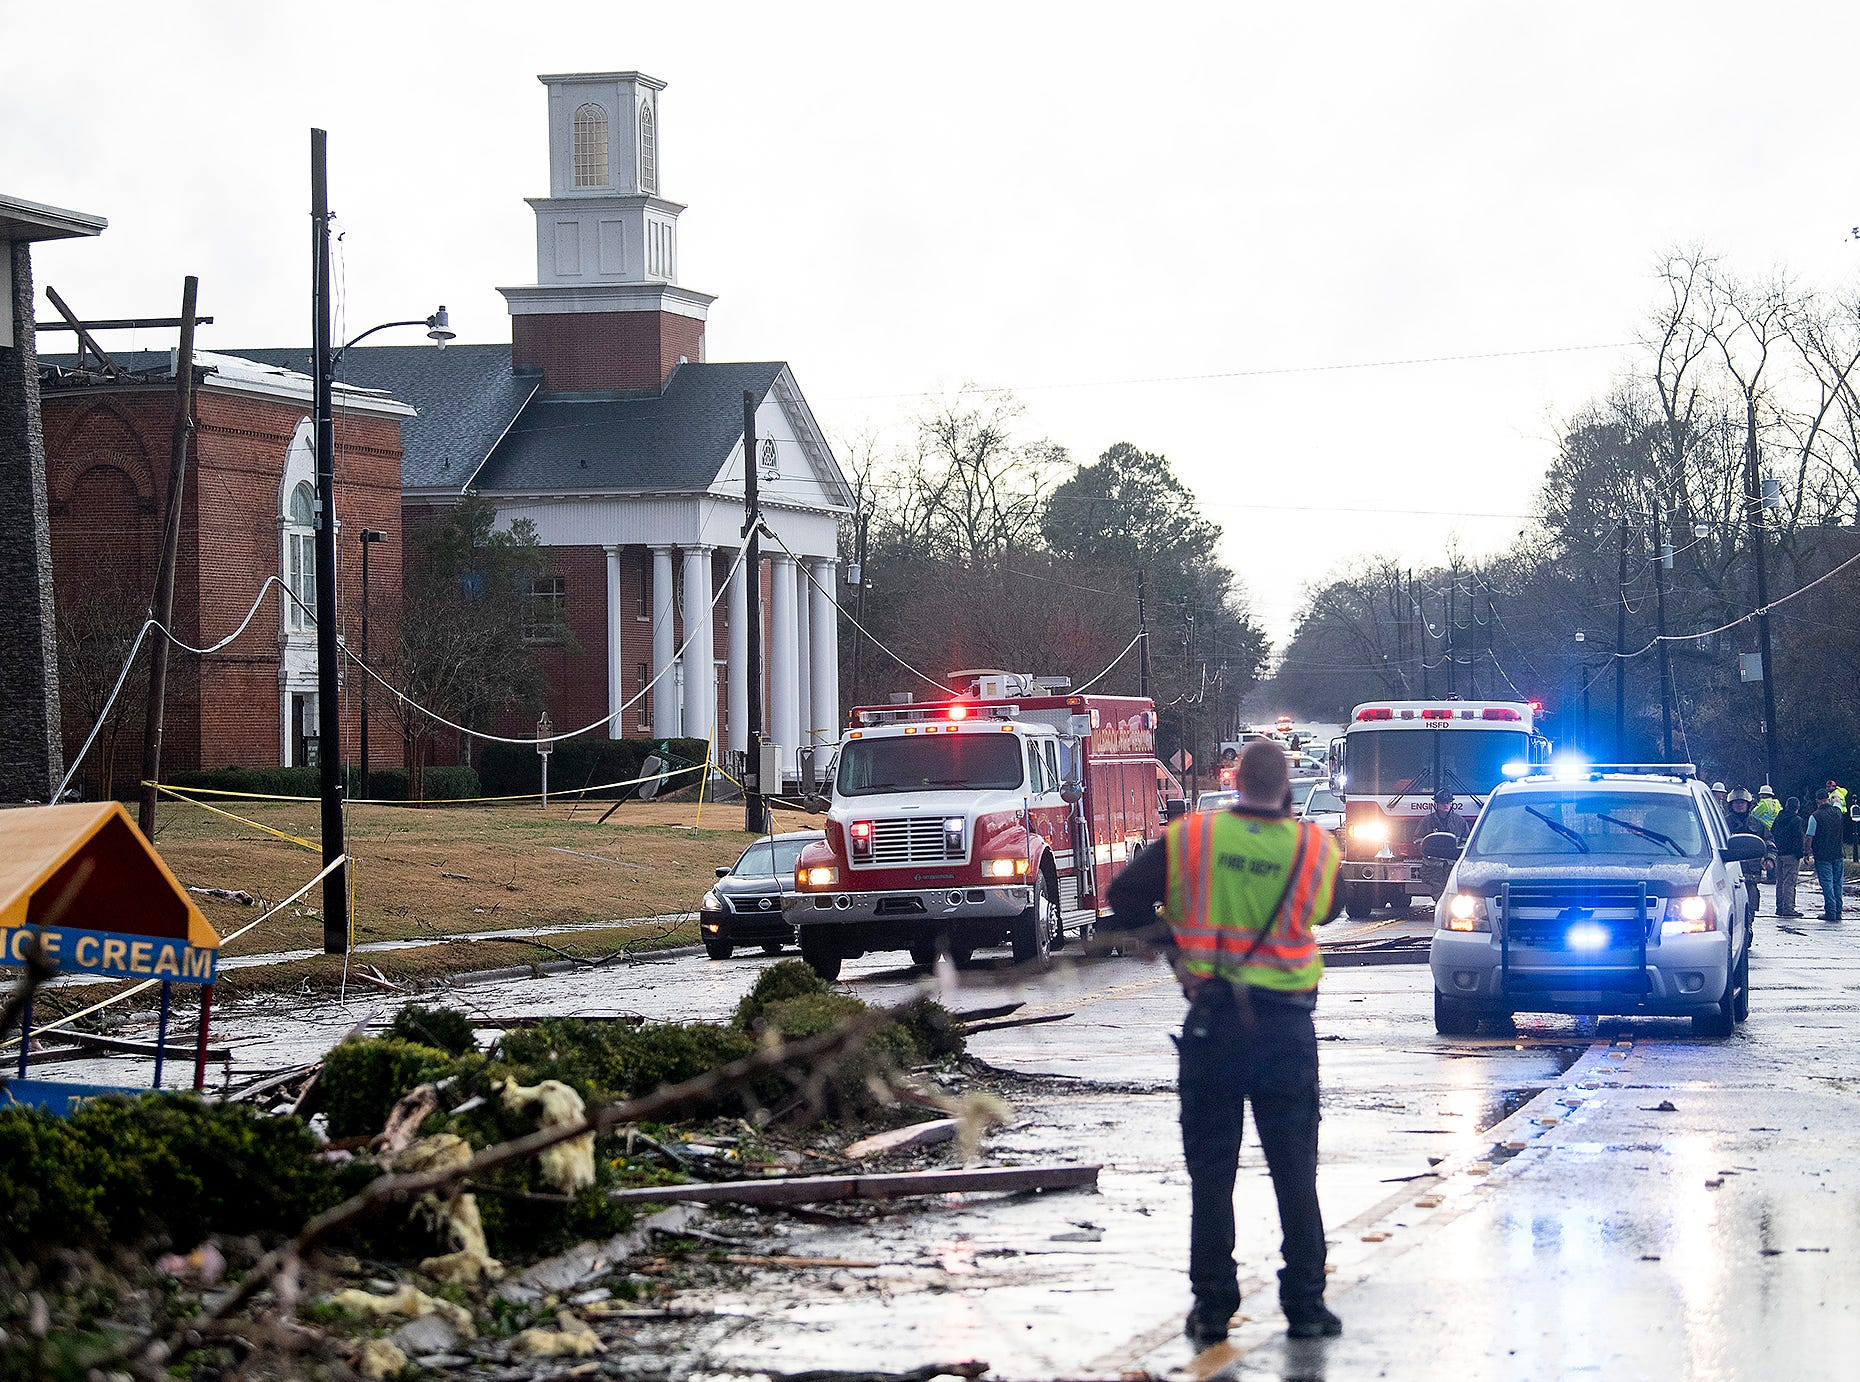 First Baptist Church damage from a tornado touchdown in Wetumpka, Ala., on Saturday afternoon January 19, 2019.